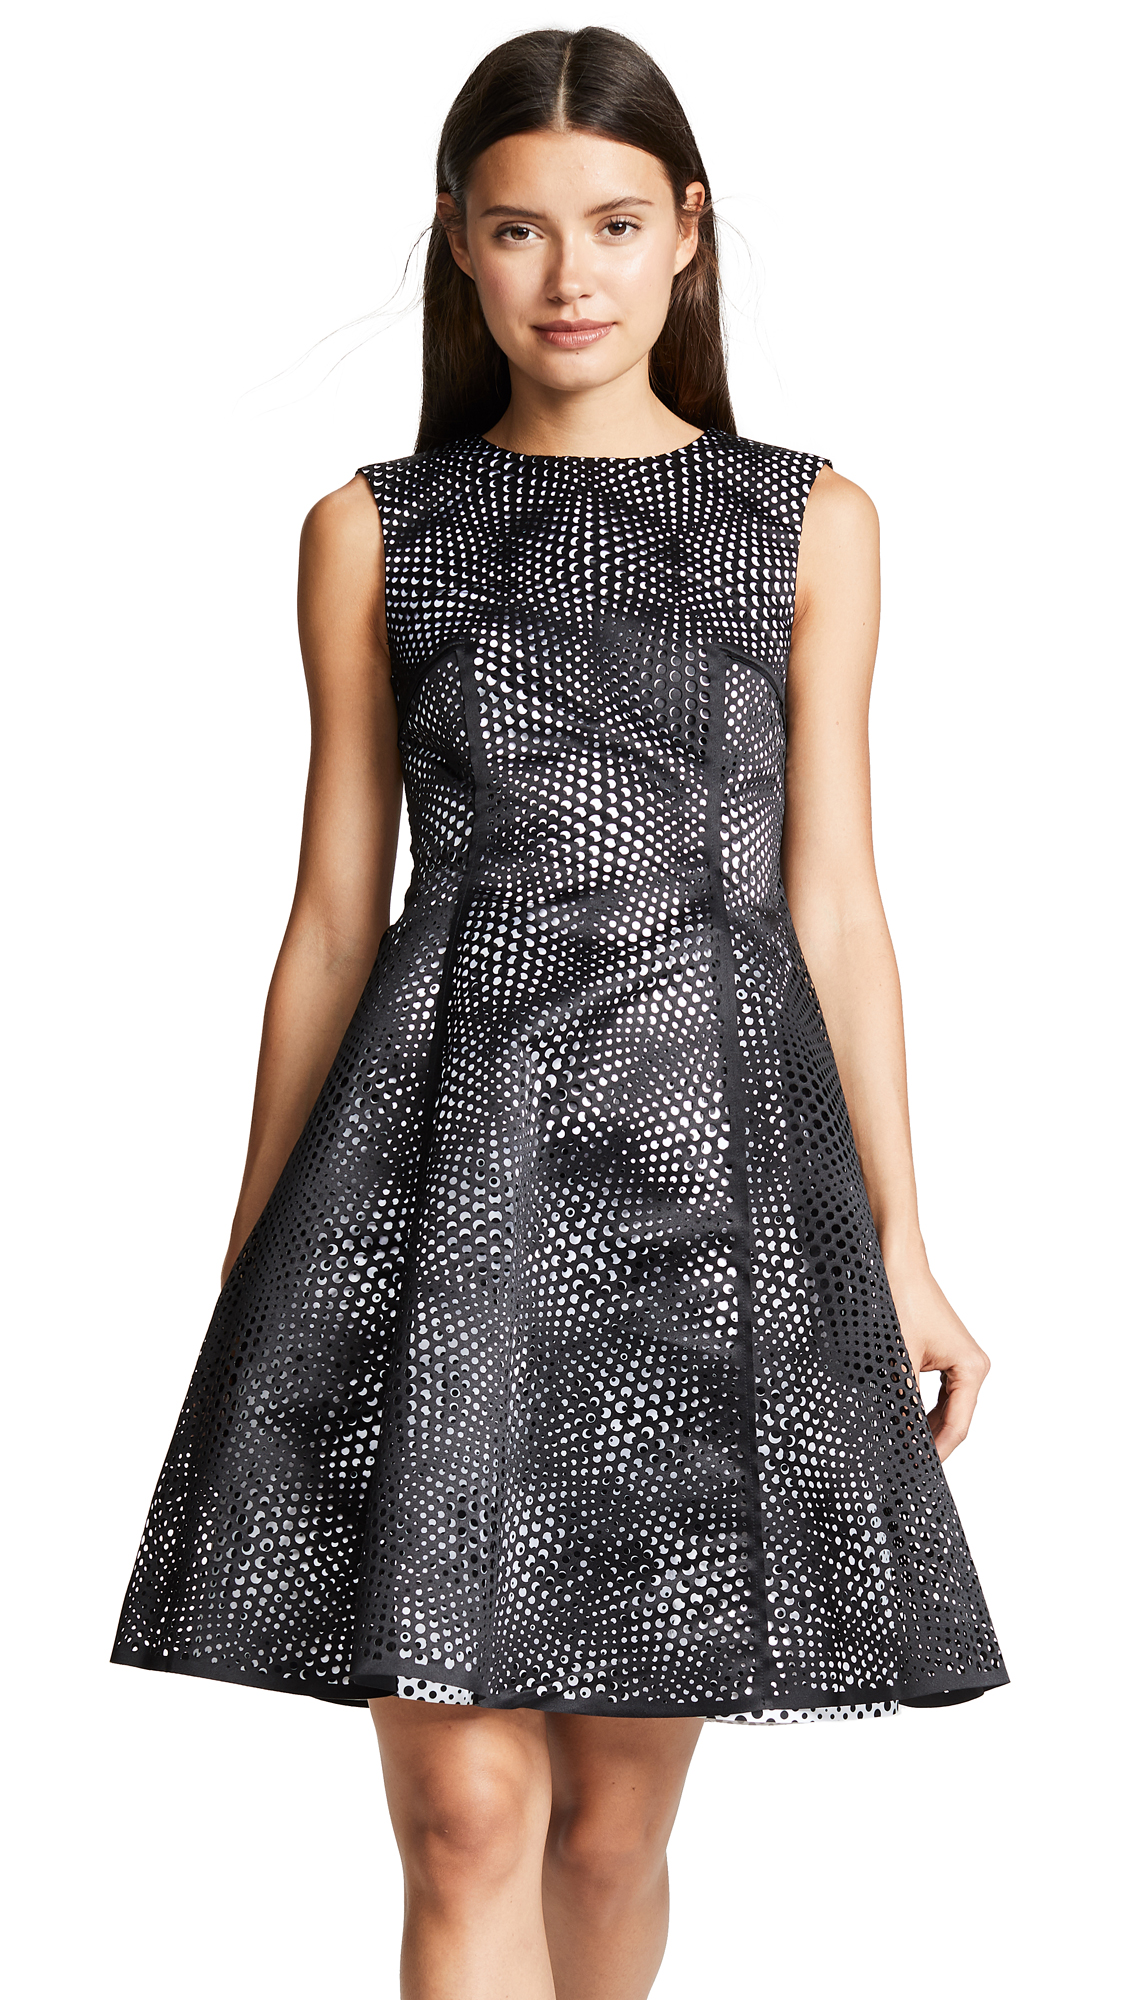 Paskal Laser Cut Optical Illusion Dress